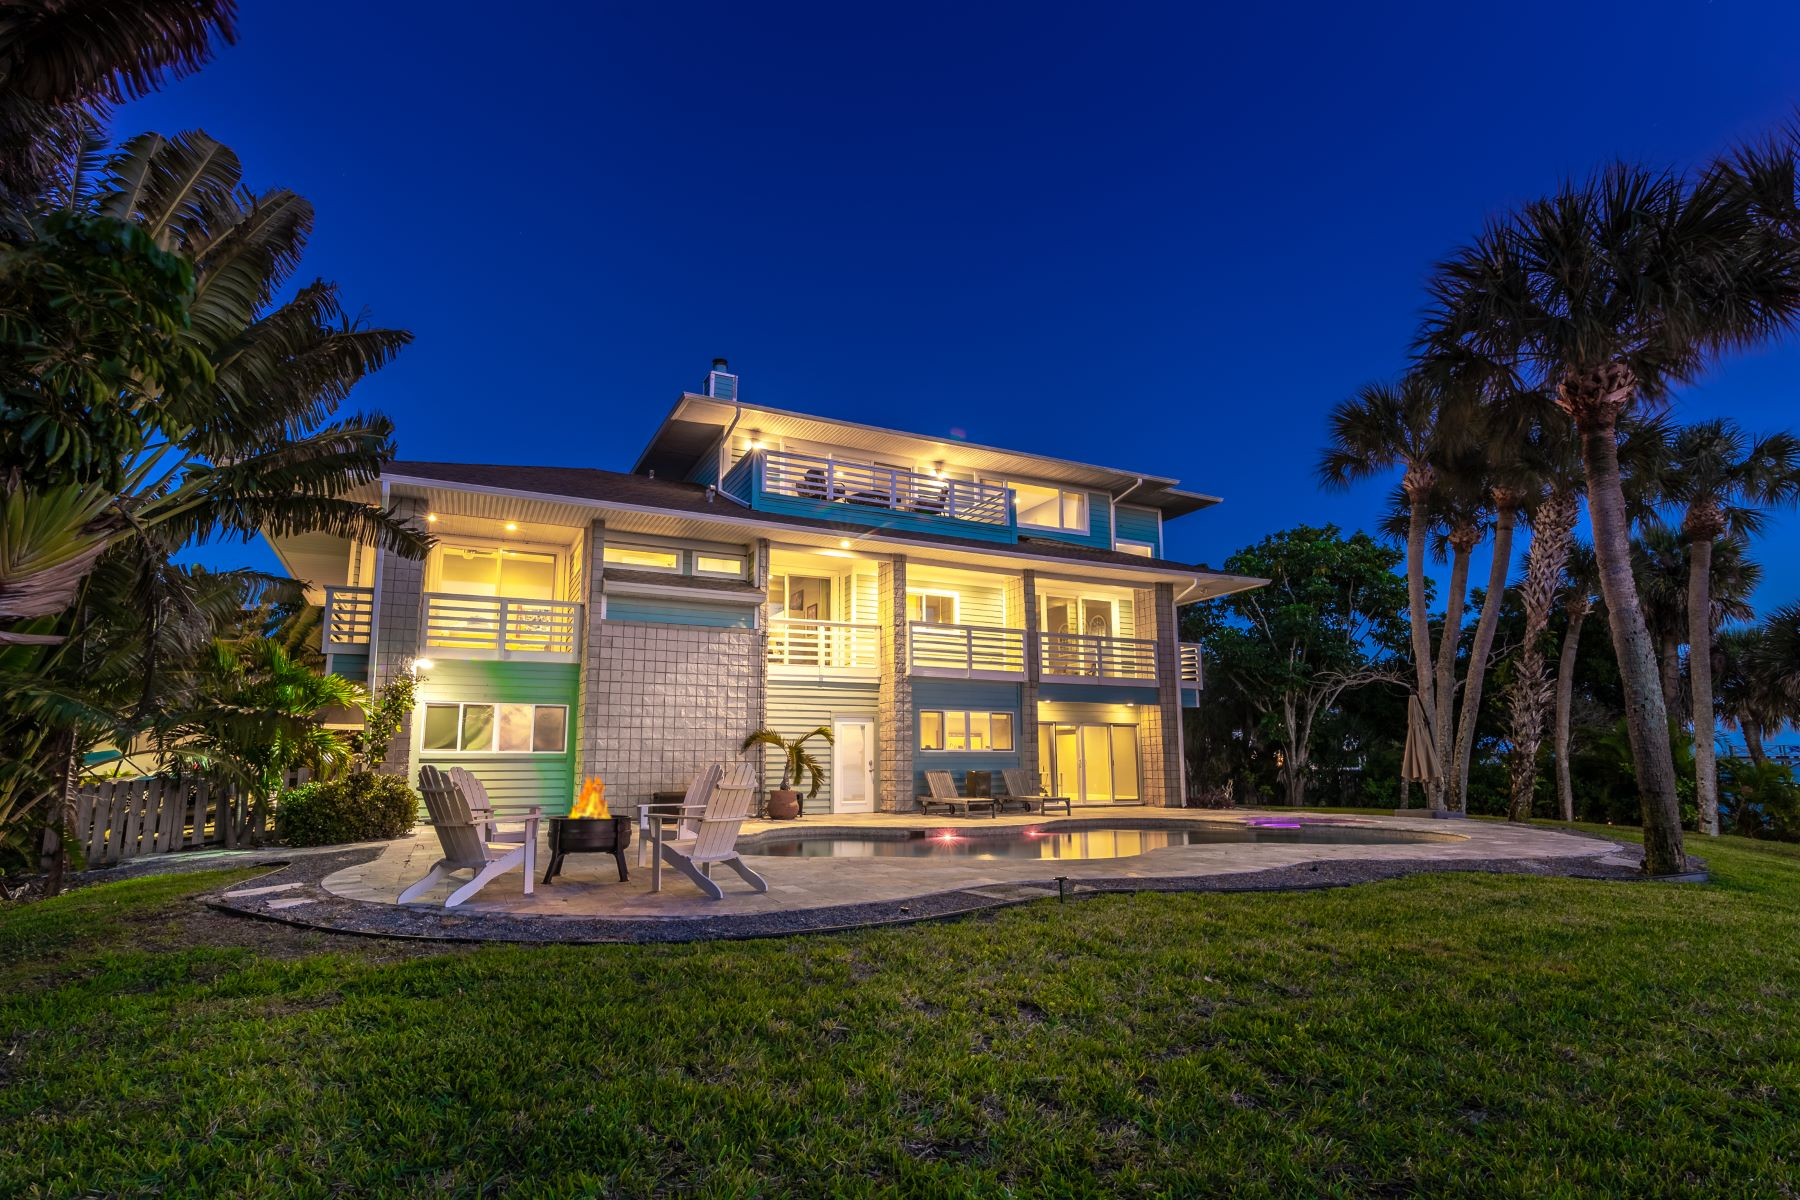 Single Family Homes for Sale at Stunning Water-Front Home Exudes Elegance! 400 Richards Road Melbourne Beach, Florida 32951 United States